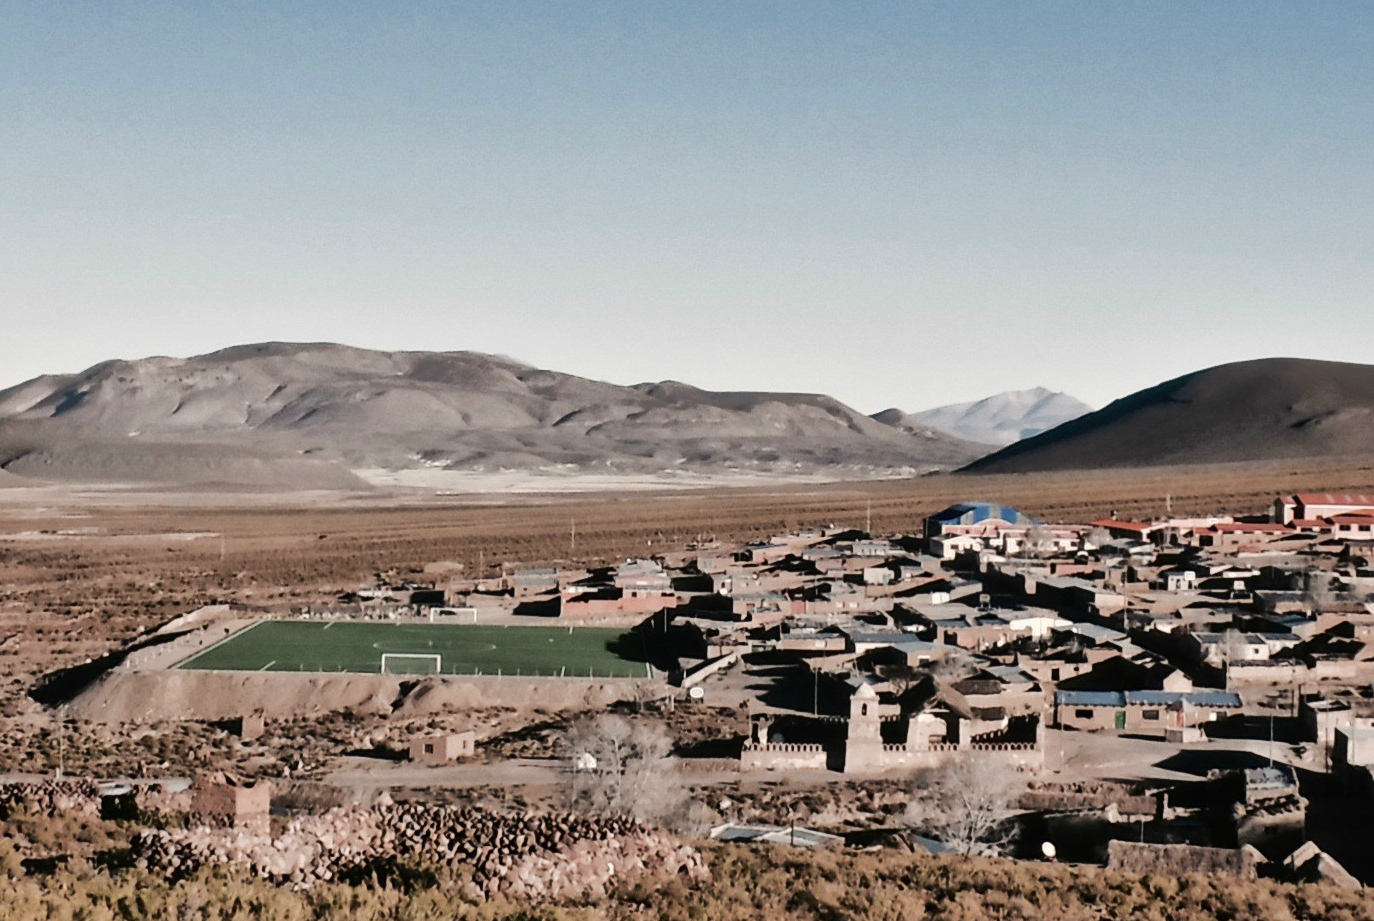 The village of Santiago K, Bolivia. Credit: Ben Walker